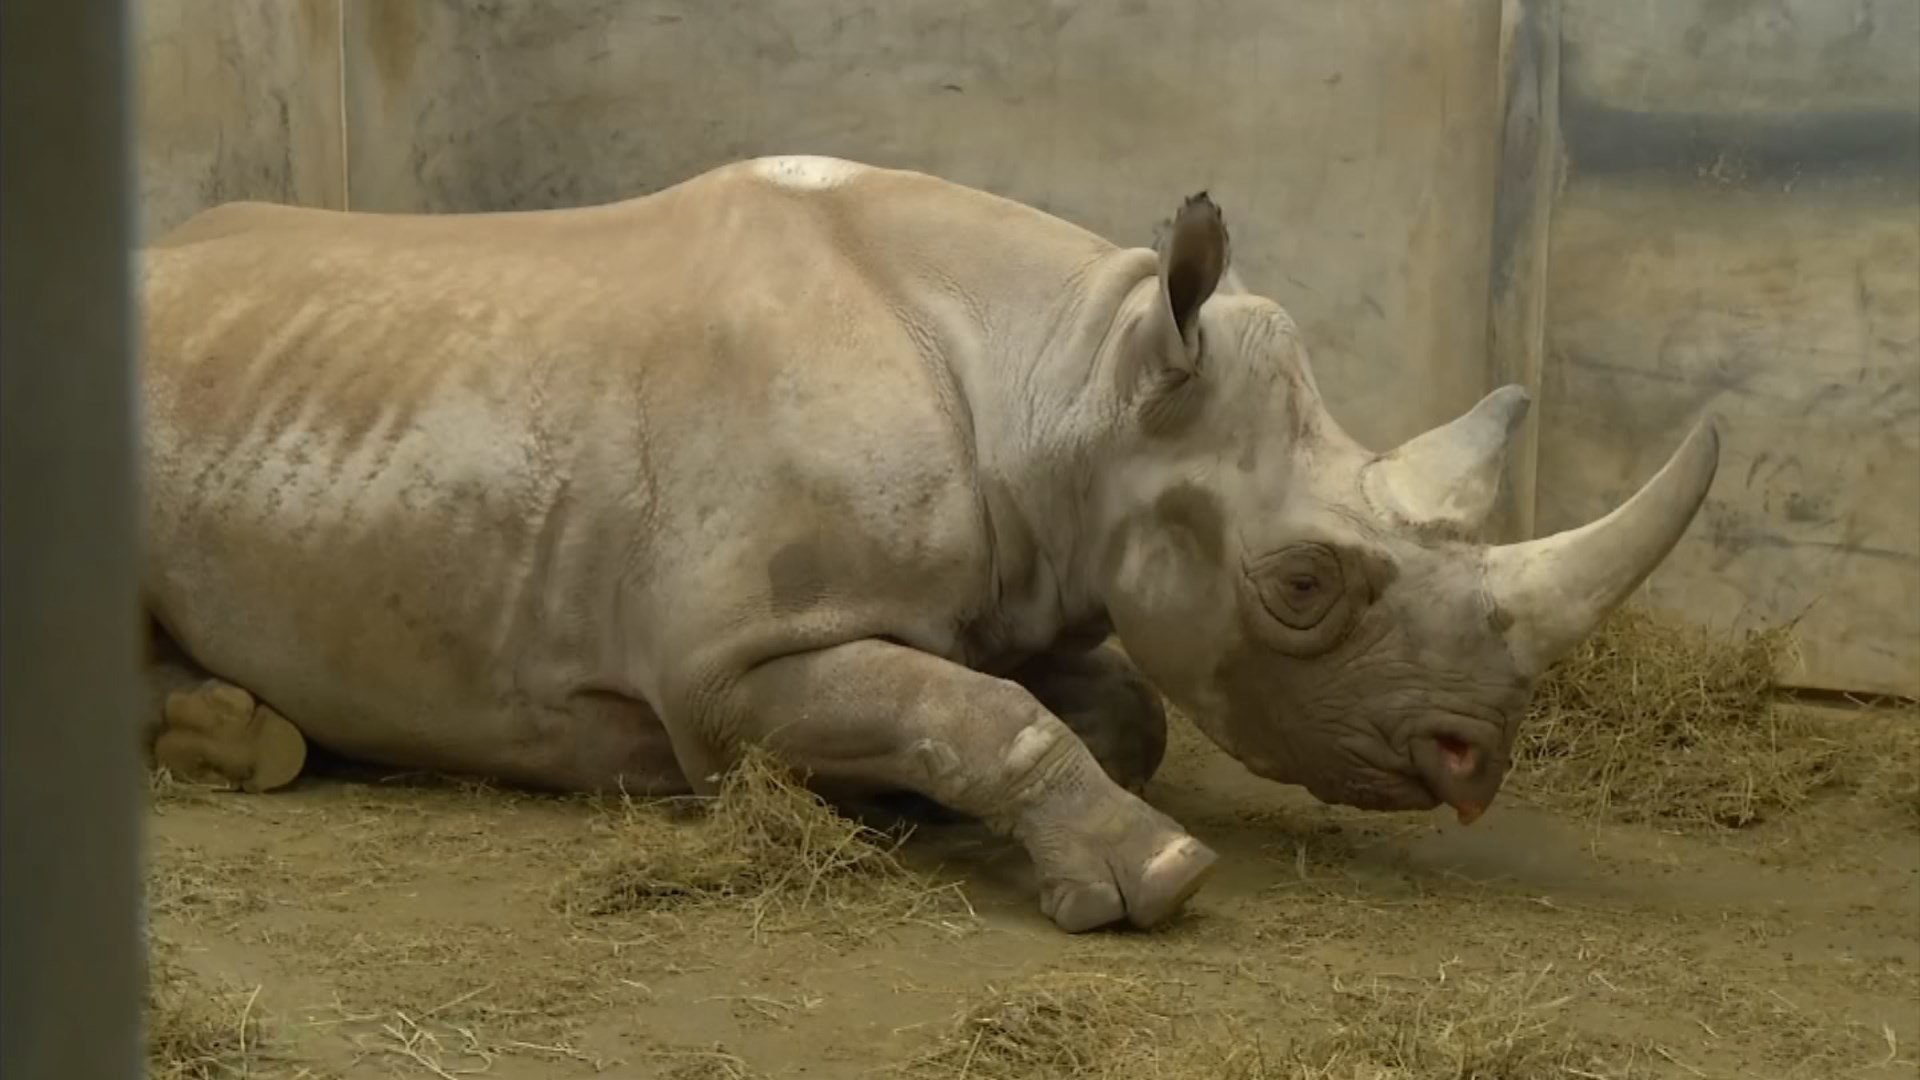 Imara is a 13-year-old eastern black rhino at the Kansas City Zoo. There are only a few thousand like her left in the world. (KCTV5)